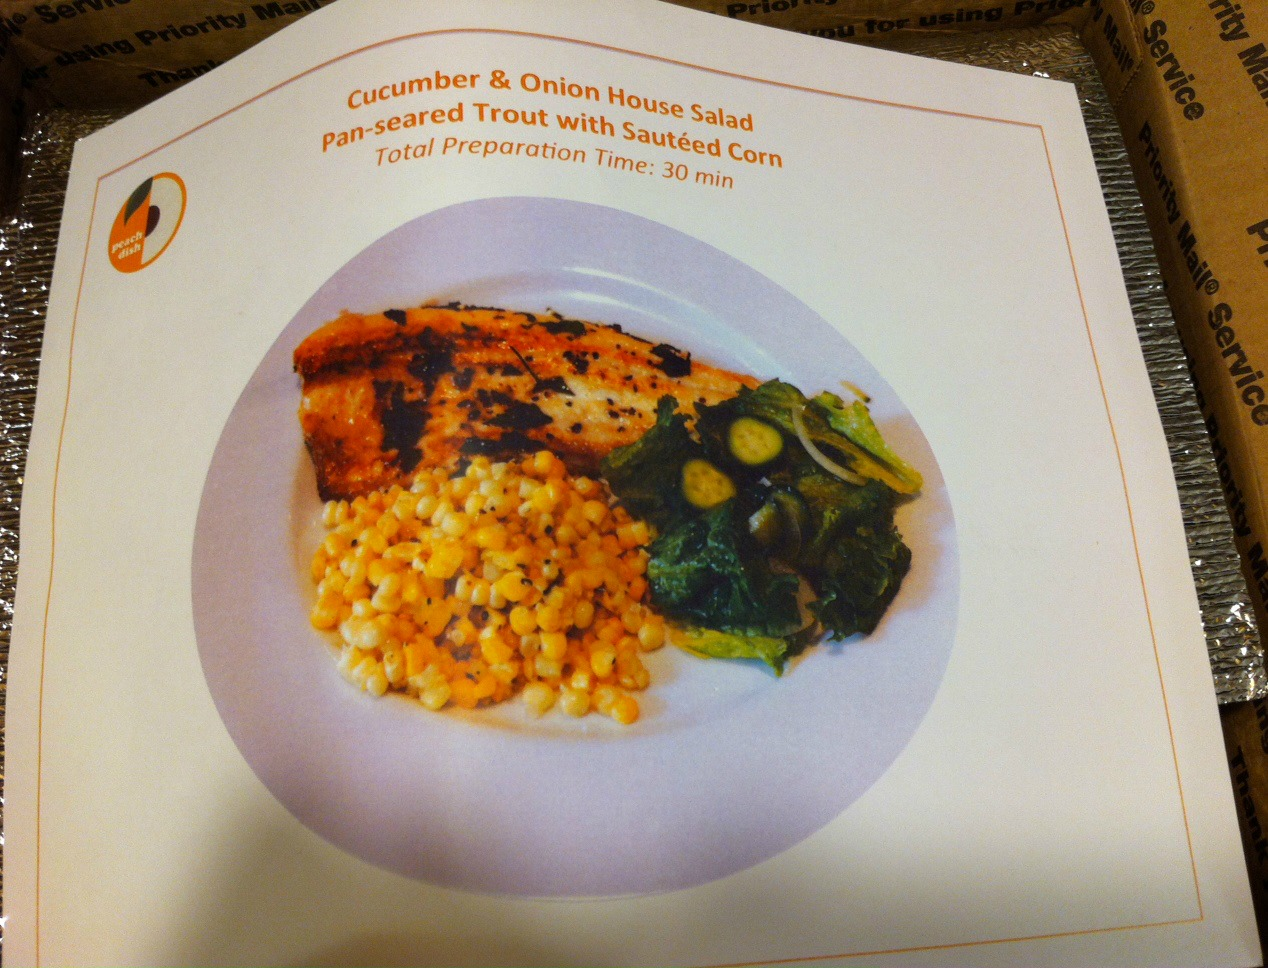 Blue apron vs peachdish